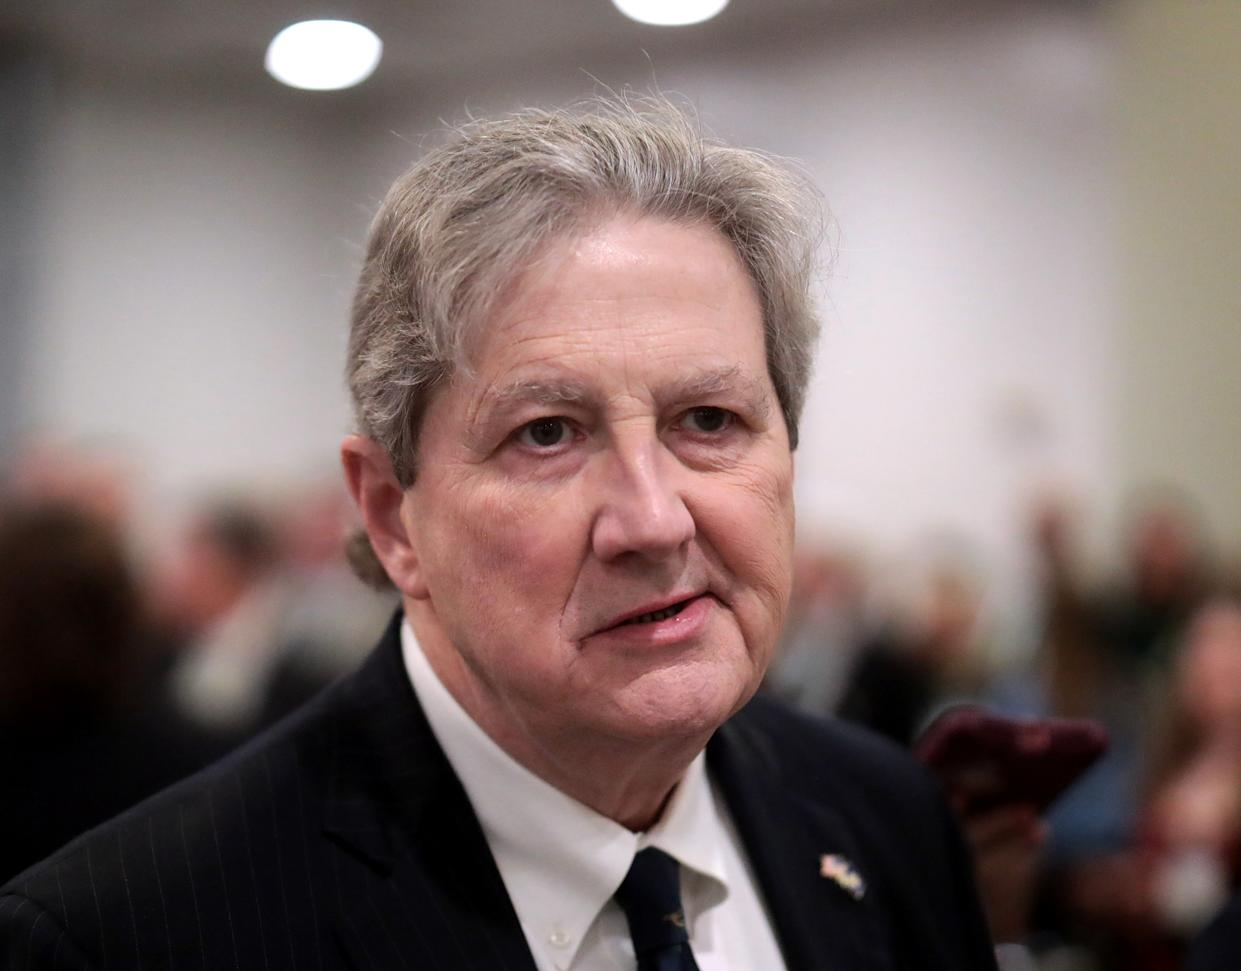 Sen. John Kennedy (R-LA) talks to reporters after attending briefing from administration officials on the coronavirus, on Capitol Hill February 25, 2020 in Washington, DC. (Mark Wilson/Getty Images)